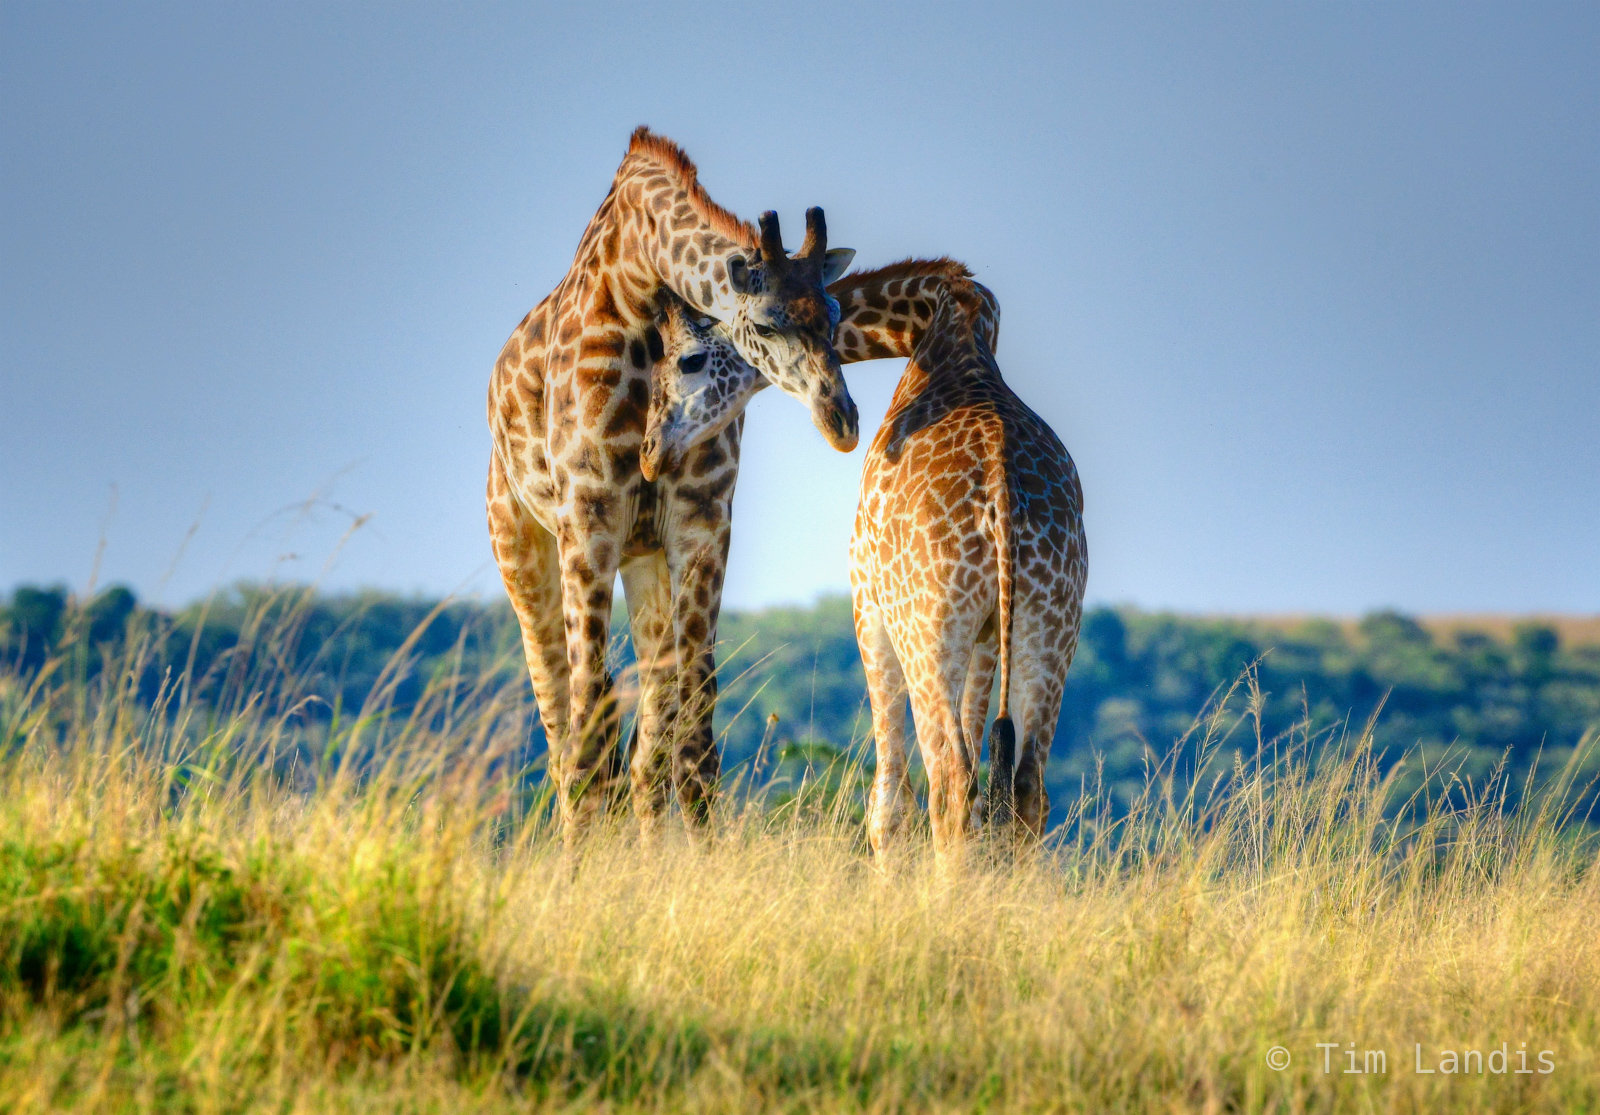 Caress, embrace, giraffes in love, hugs, love, necking, photo